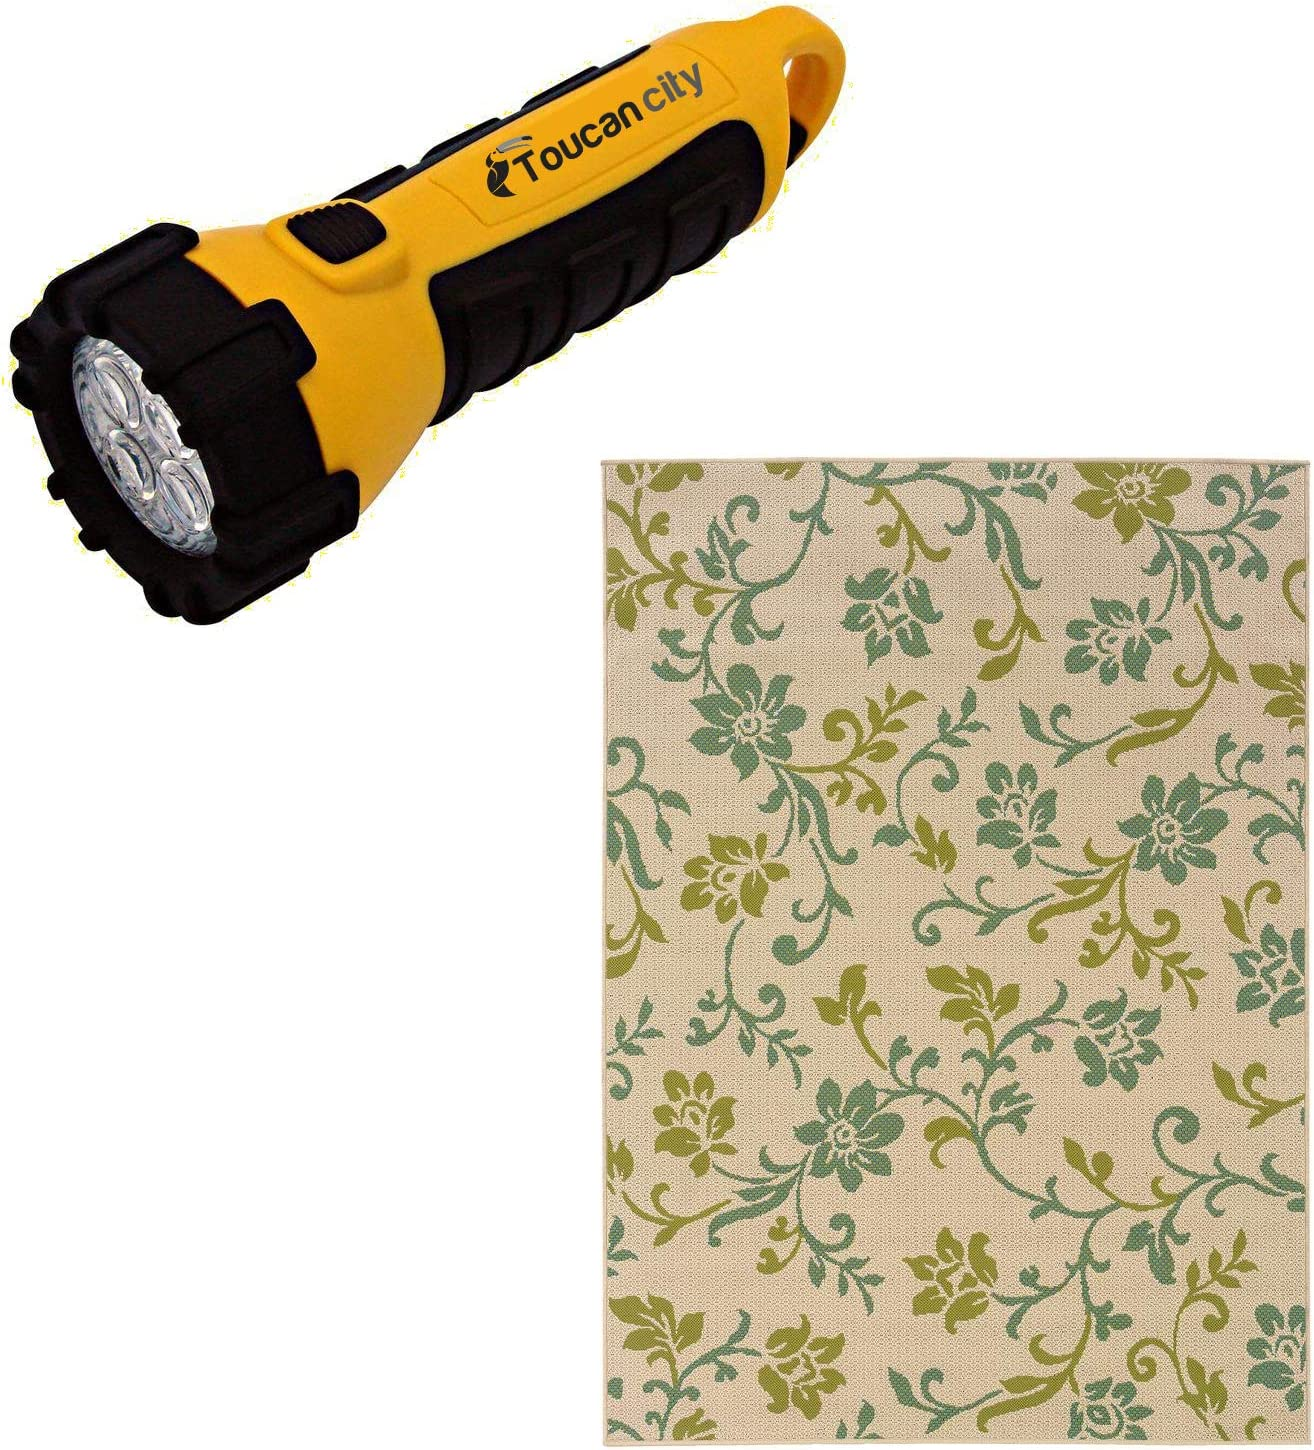 Toucan City LED Flashlight and Home Decorators Collection Adelaide Beige 8 ft. x 11 ft. Outdoor Area Rug 0931070420